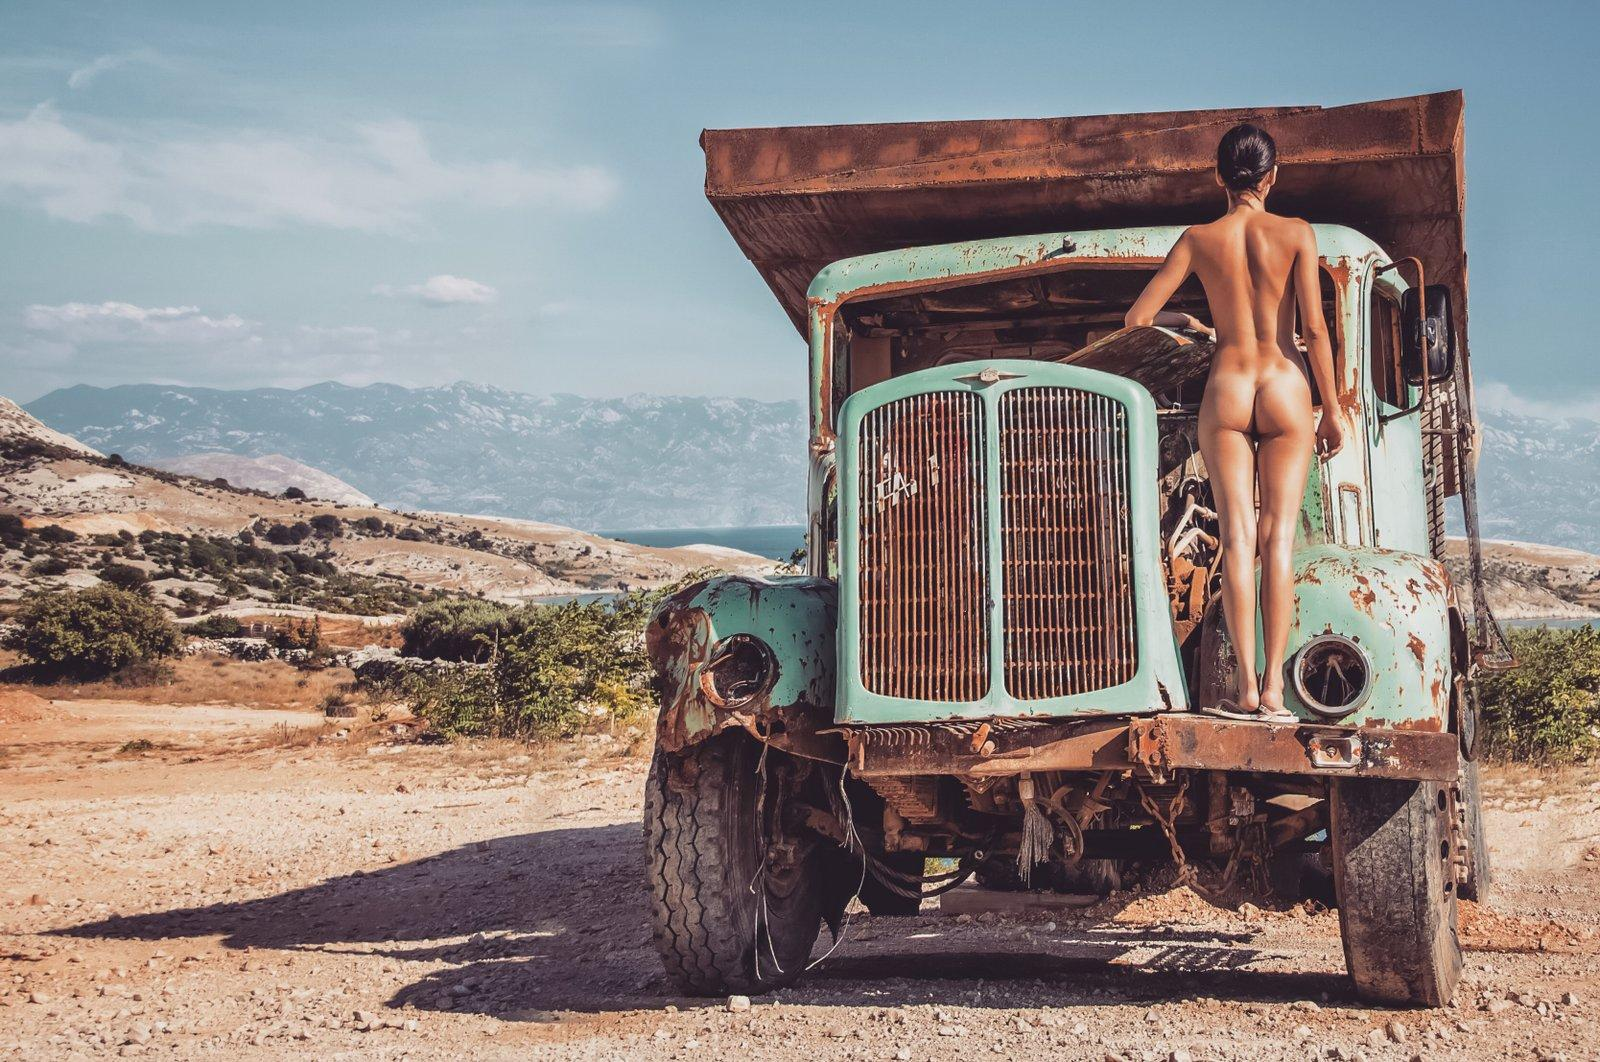 Nude girl on the abandoned truck in Krk Island Croatia